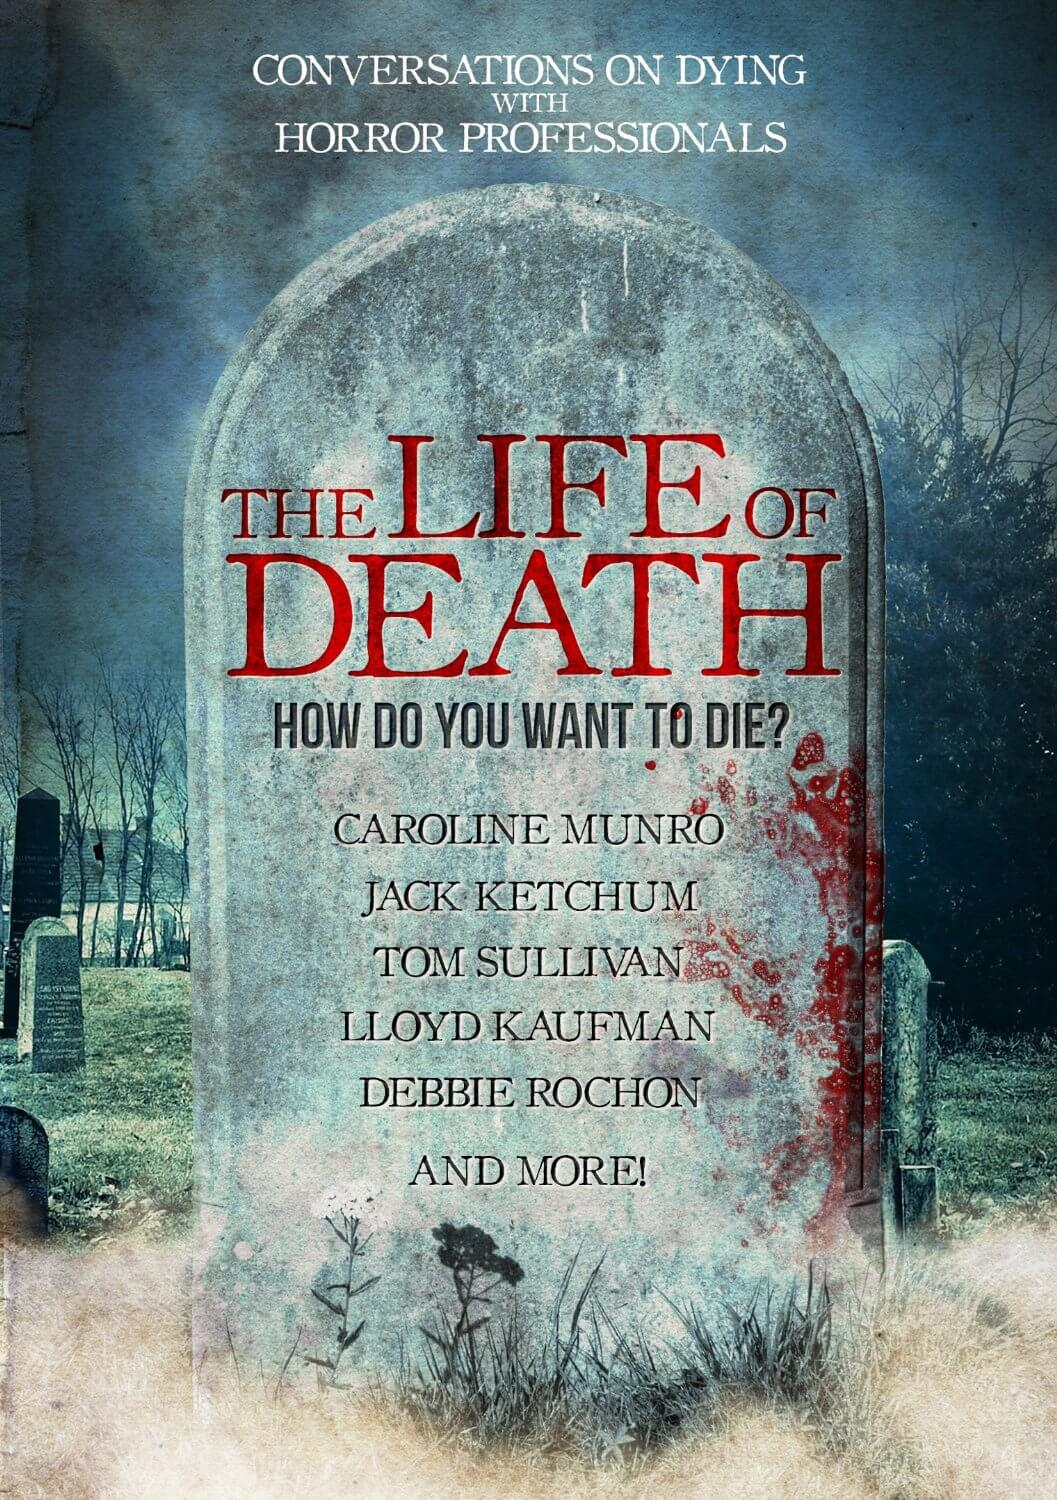 The Life of Death 1 - Documentary The Life of Death Features Conversations on Dying with Horror Professionals